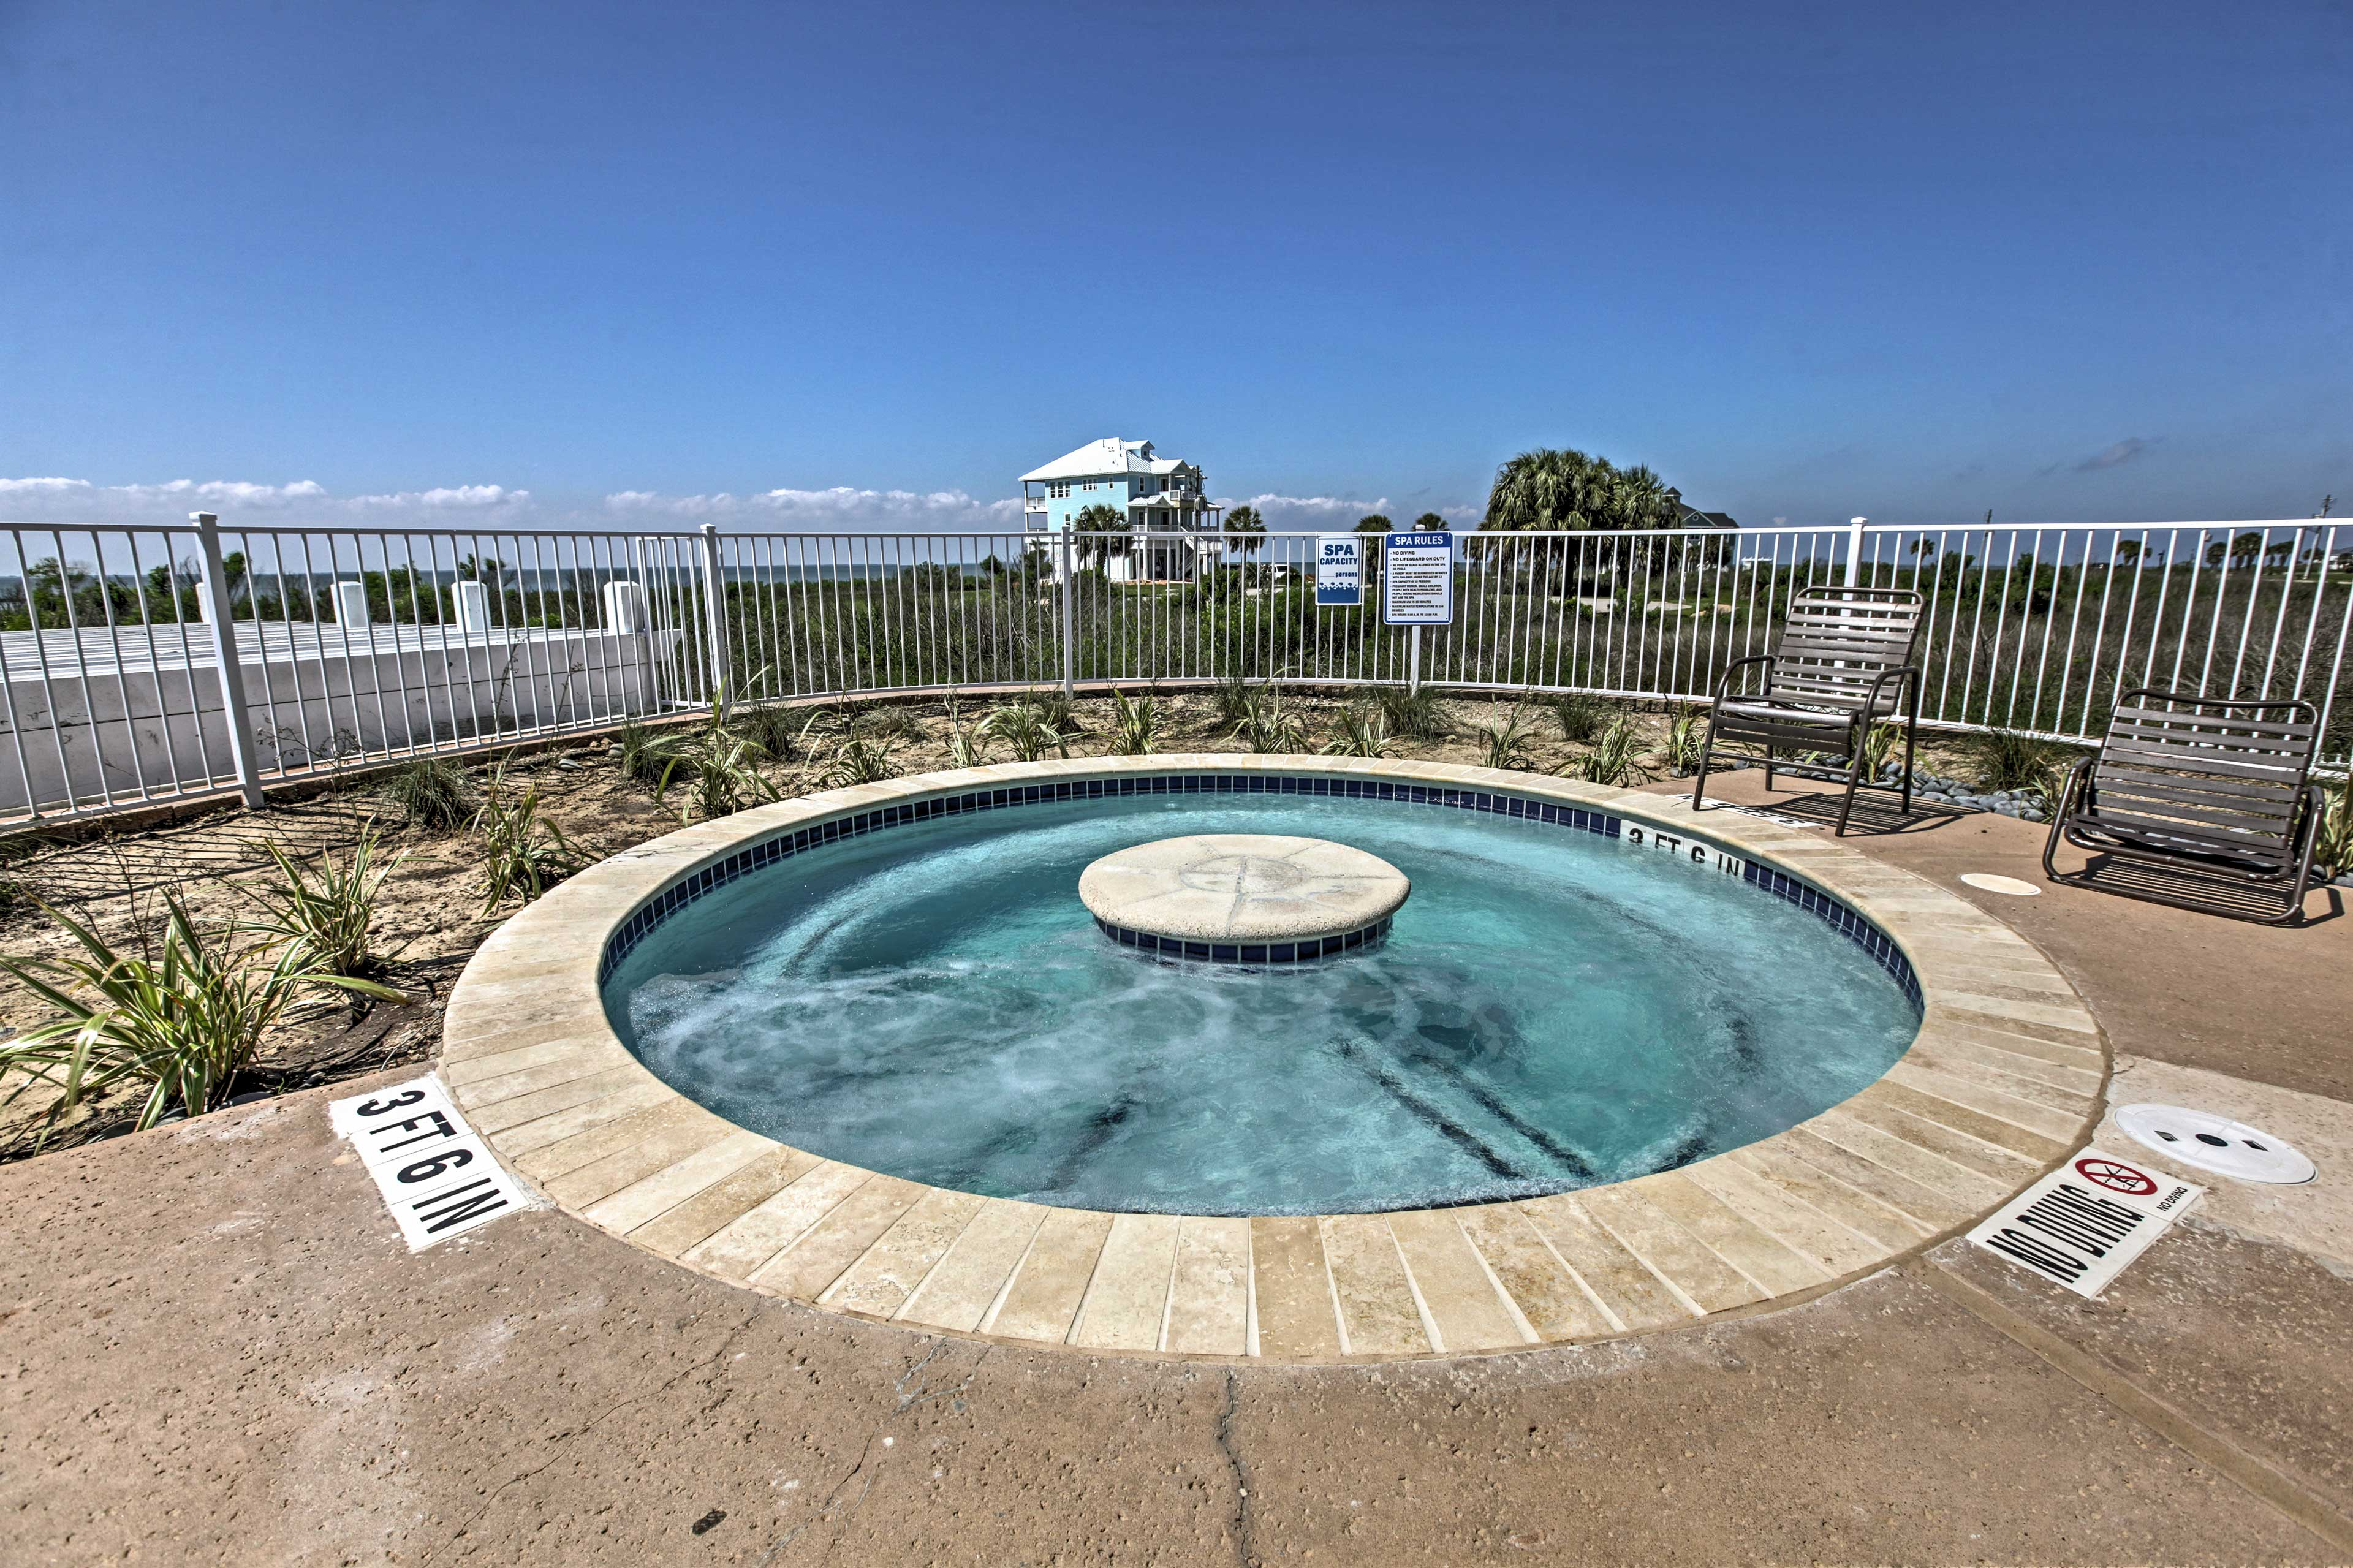 Melt your worries away in one of the hot tubs!